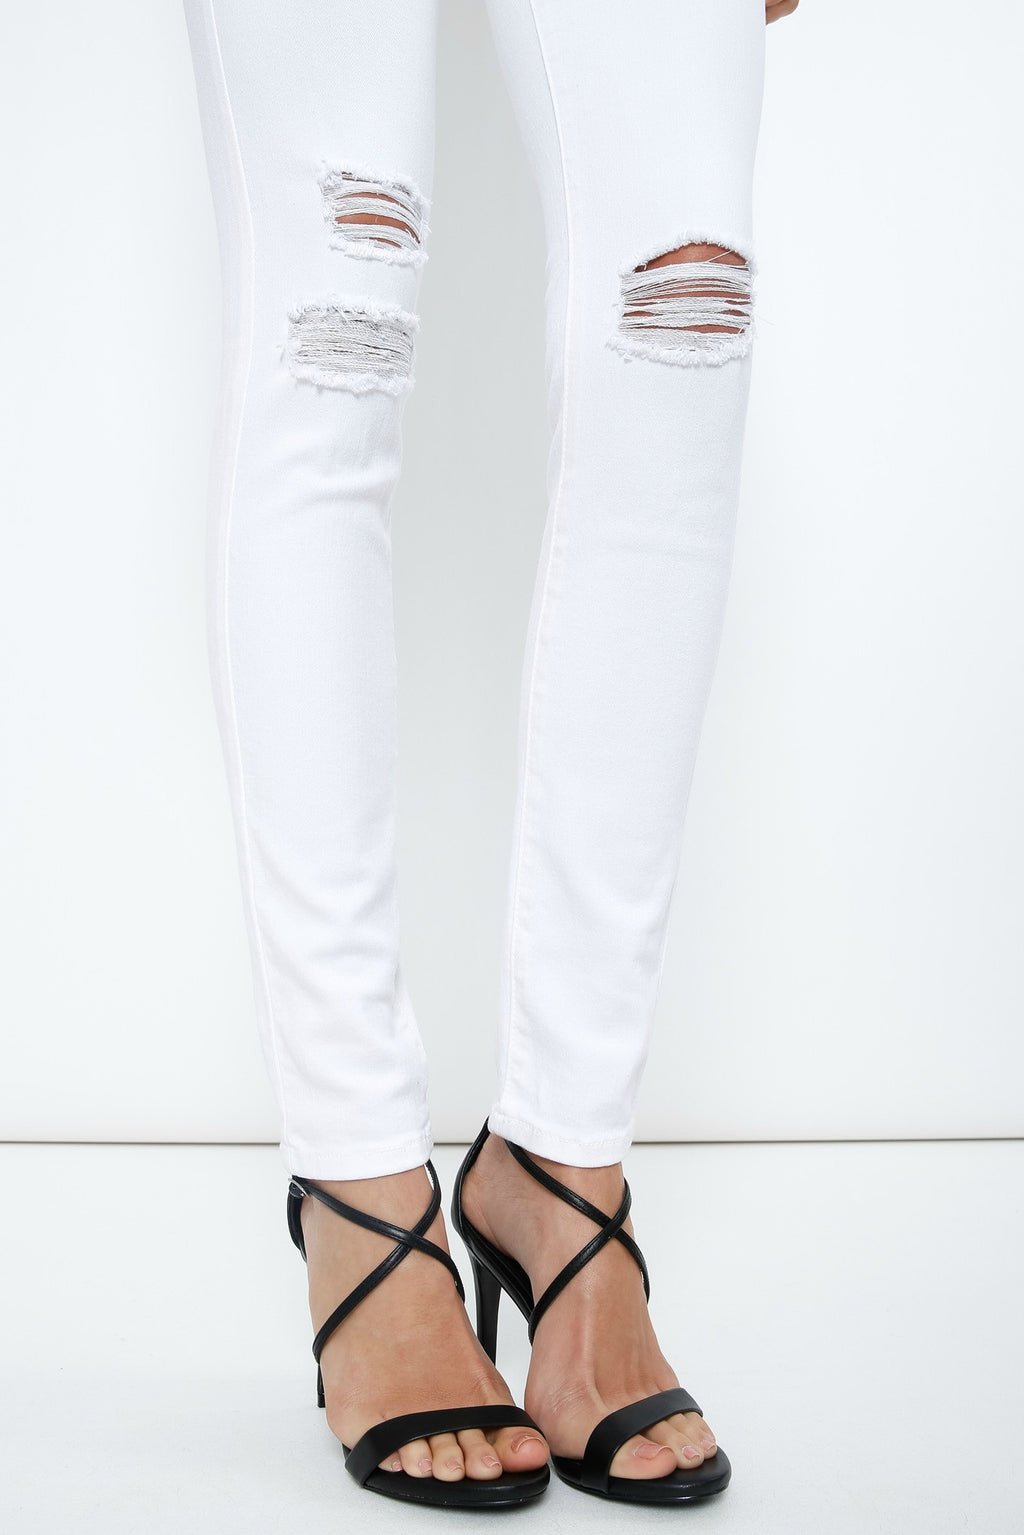 holes in the knees white skinny jeans | boutique bleu spokane